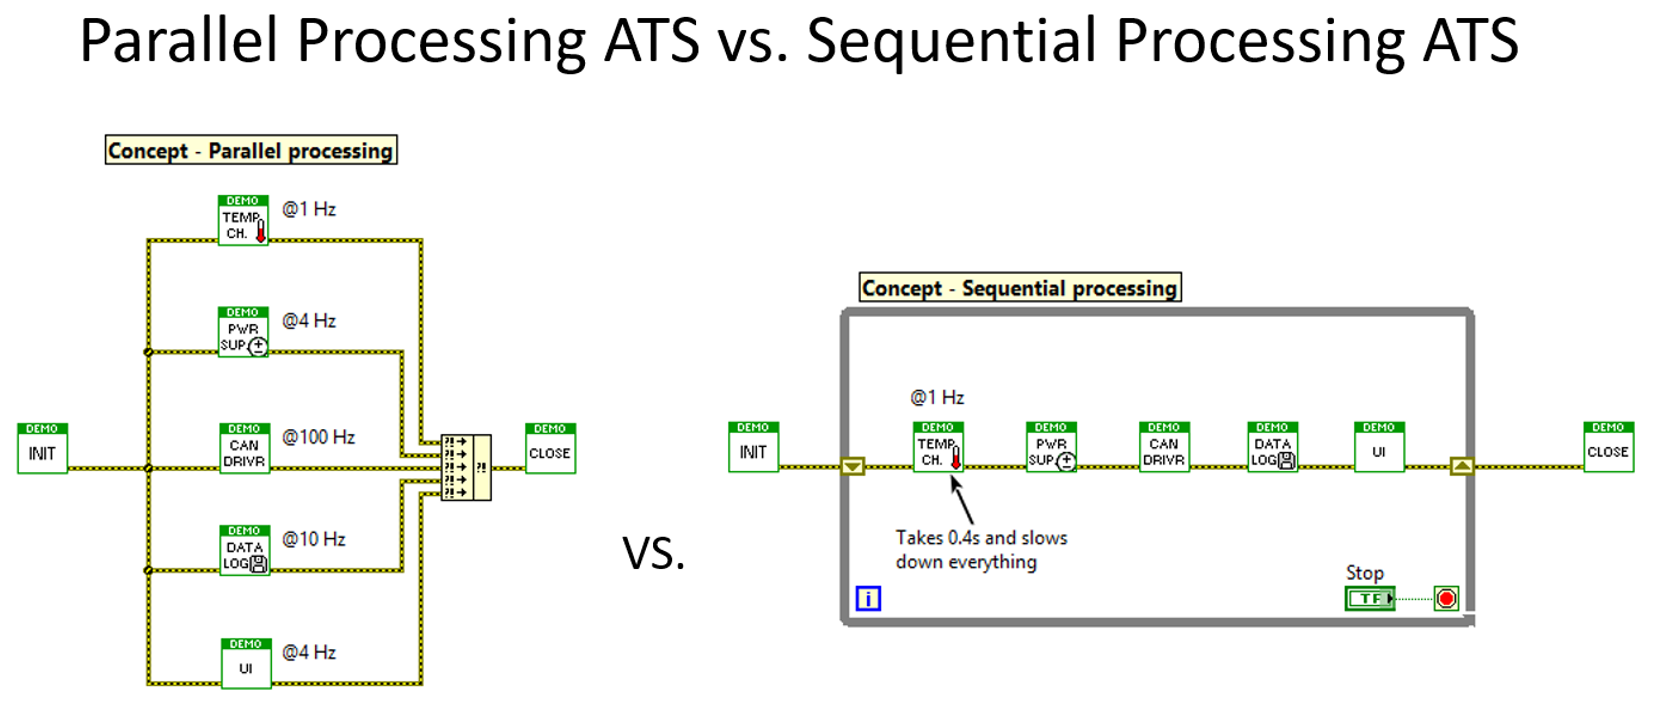 Parallel Processing is obviously faster and more responsive than Sequential Processing